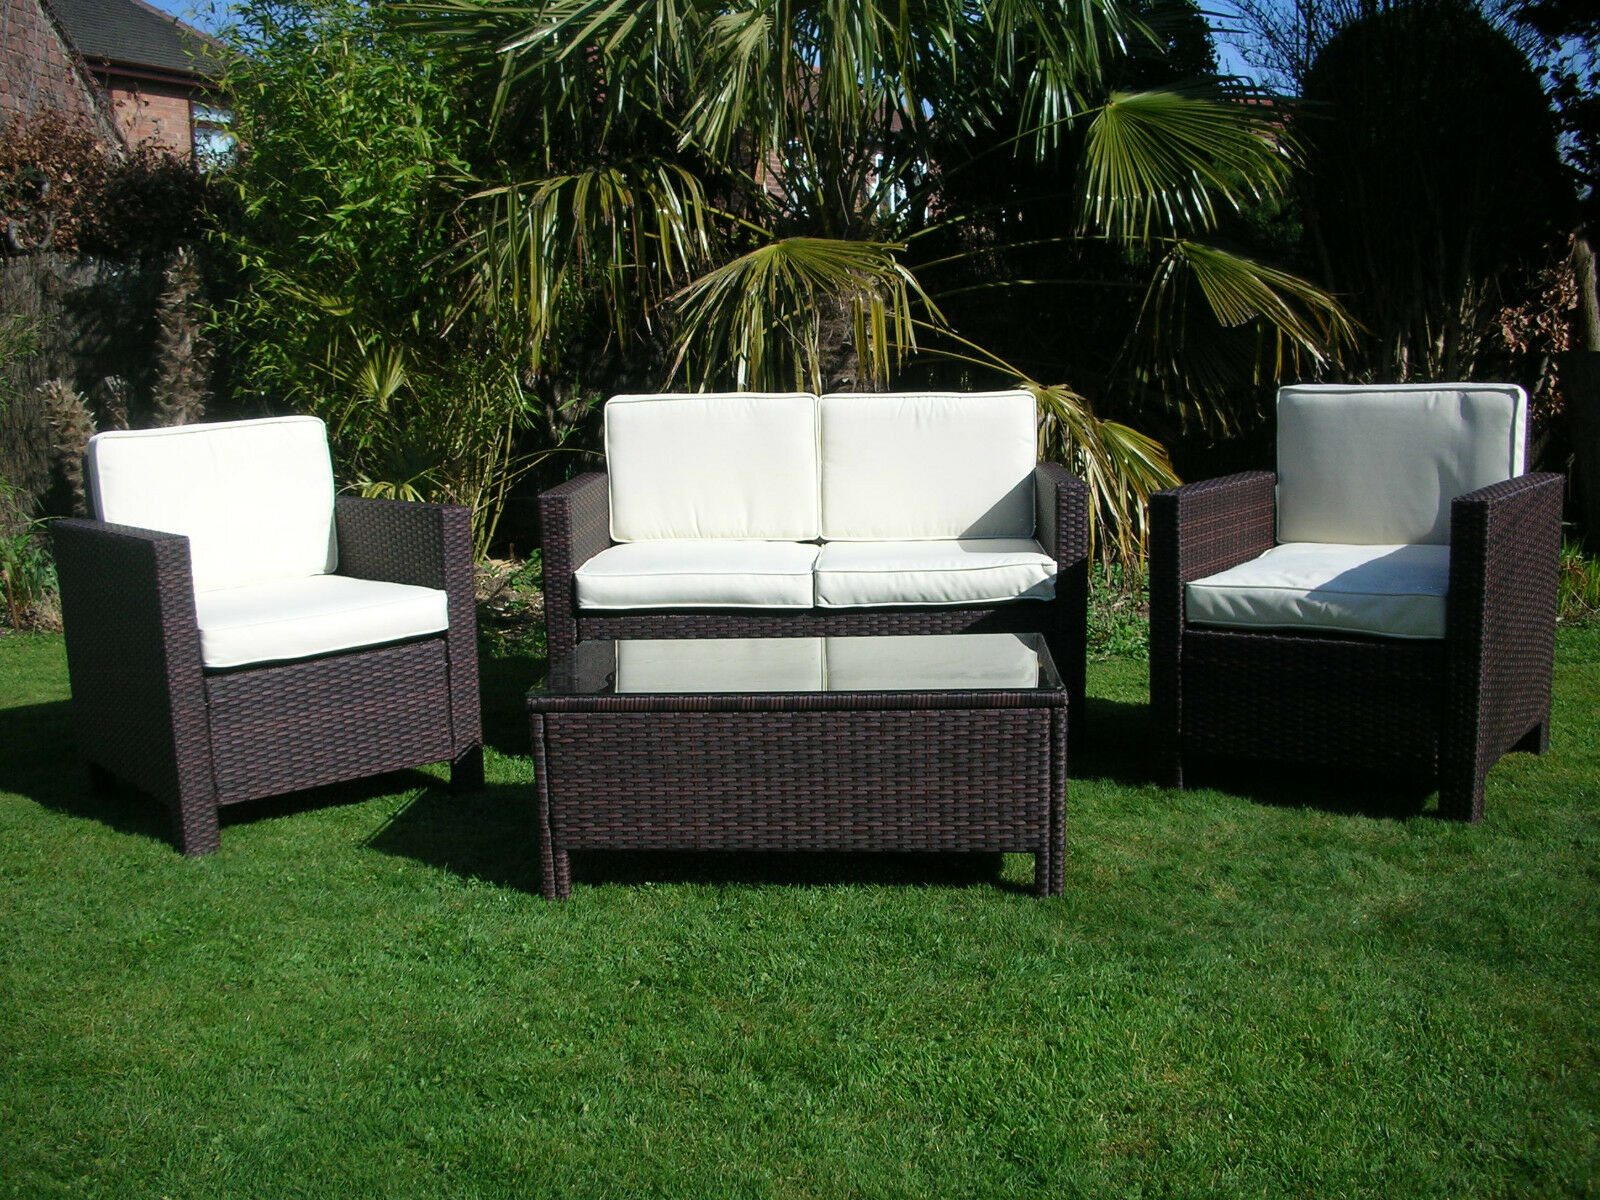 outdoor patio set new garden rattan wicker outdoor conservatory furniture 30240